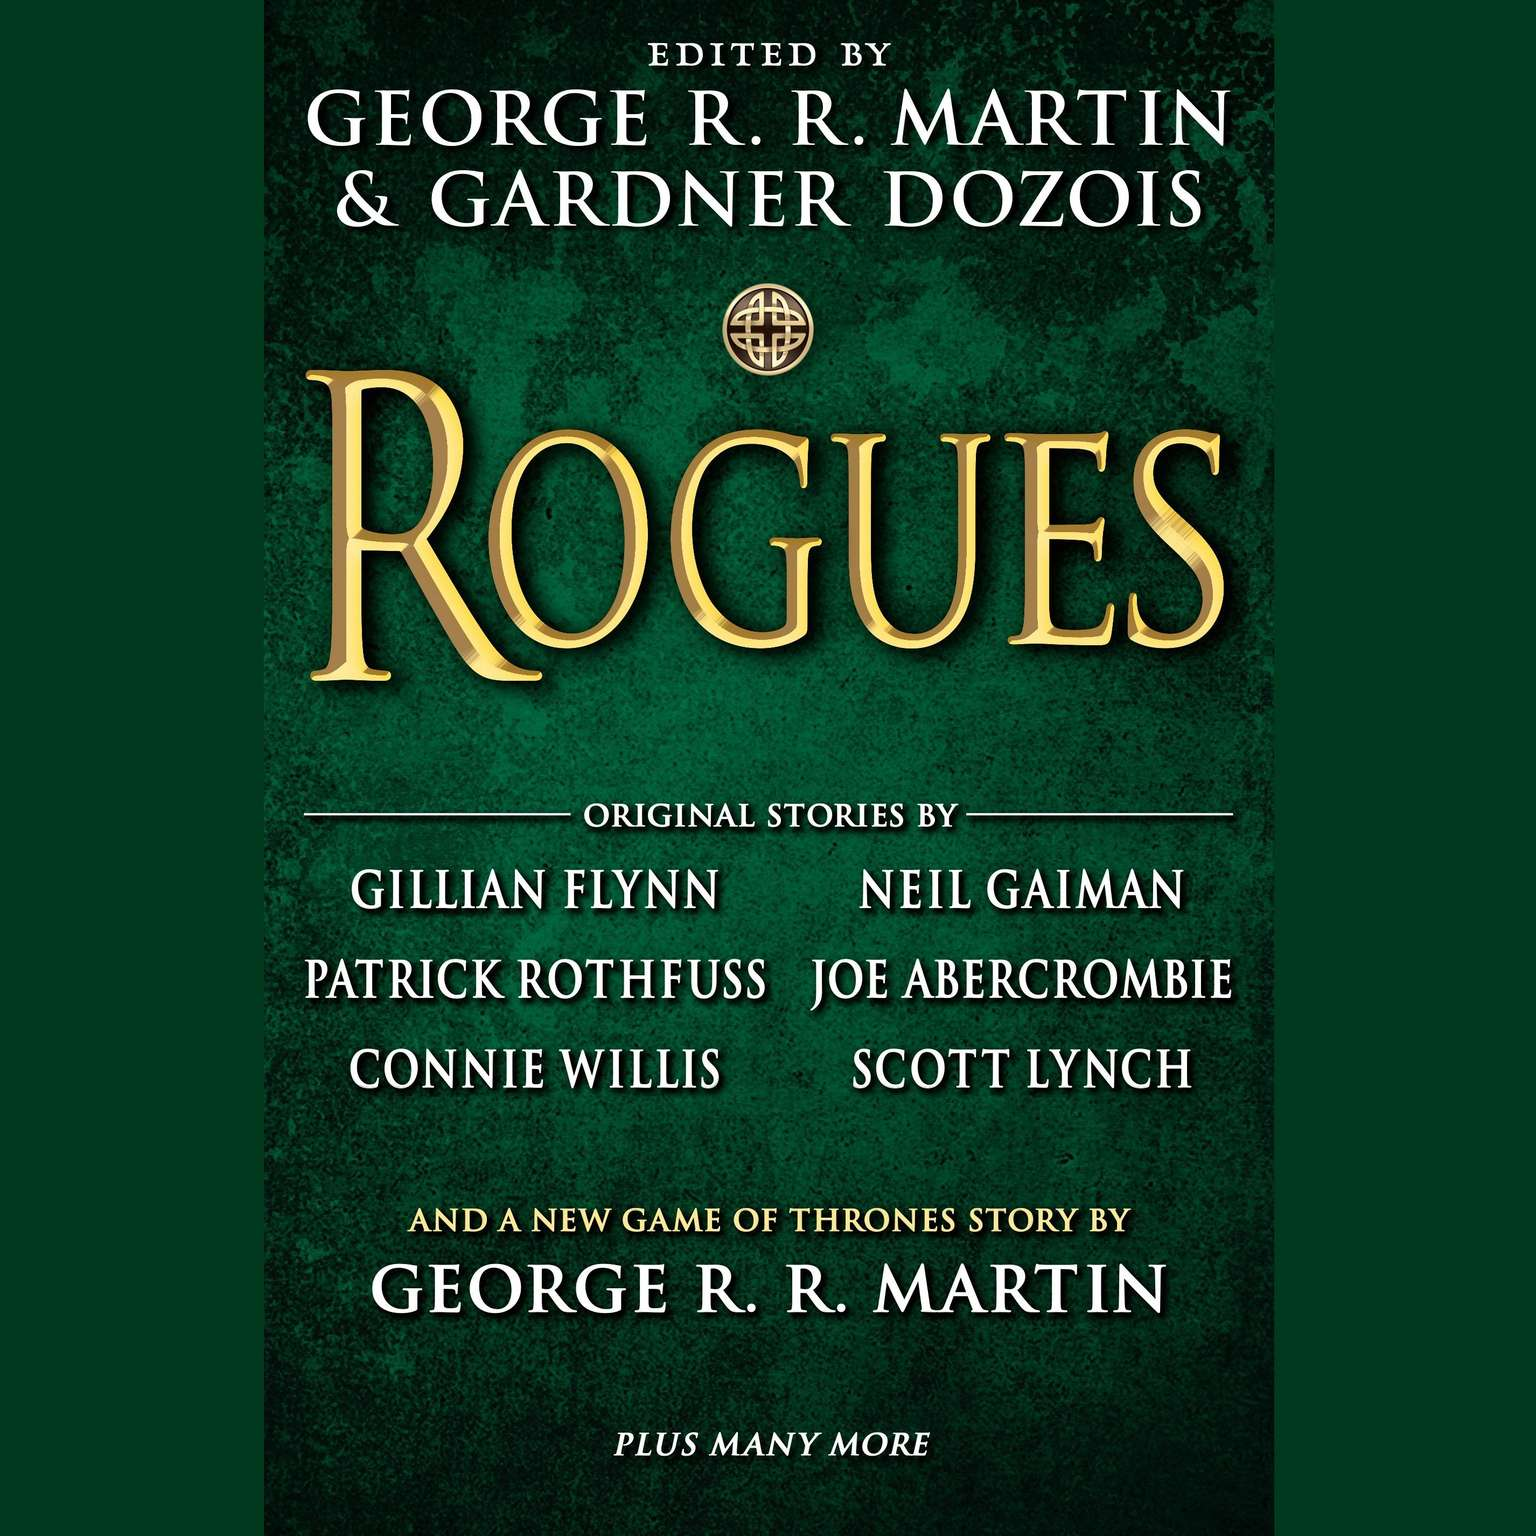 Printable Rogues Audiobook Cover Art